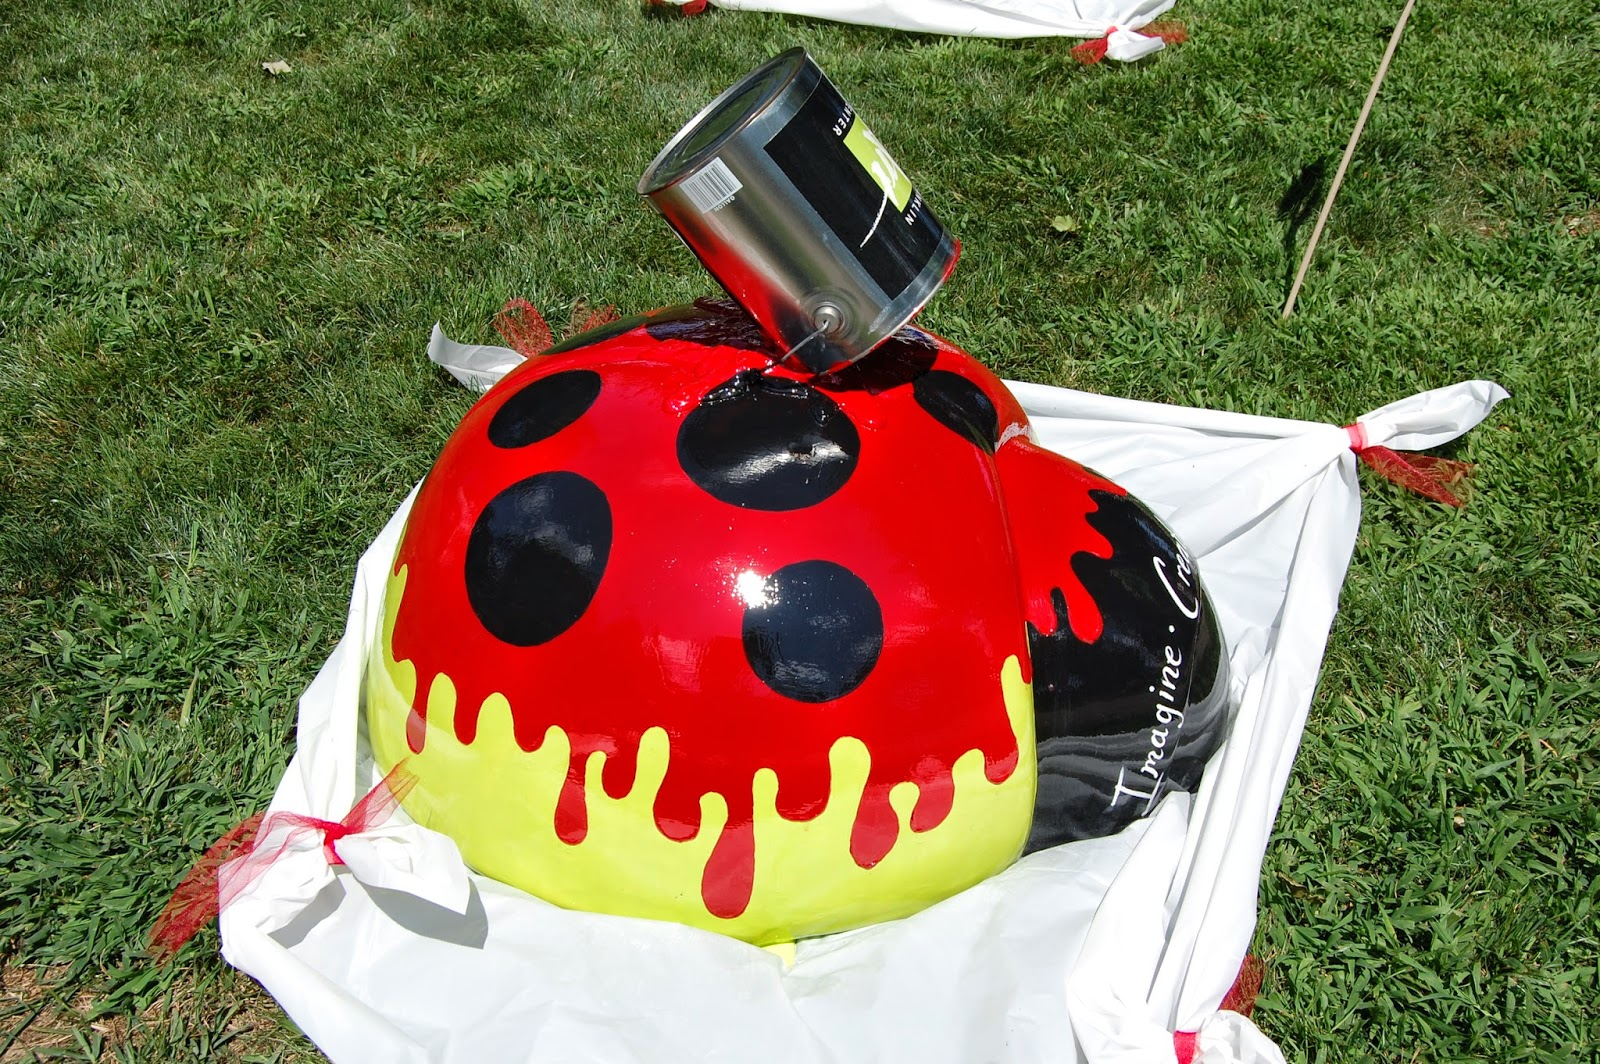 Franklin Art Center ladybug on display at the Town Common in August